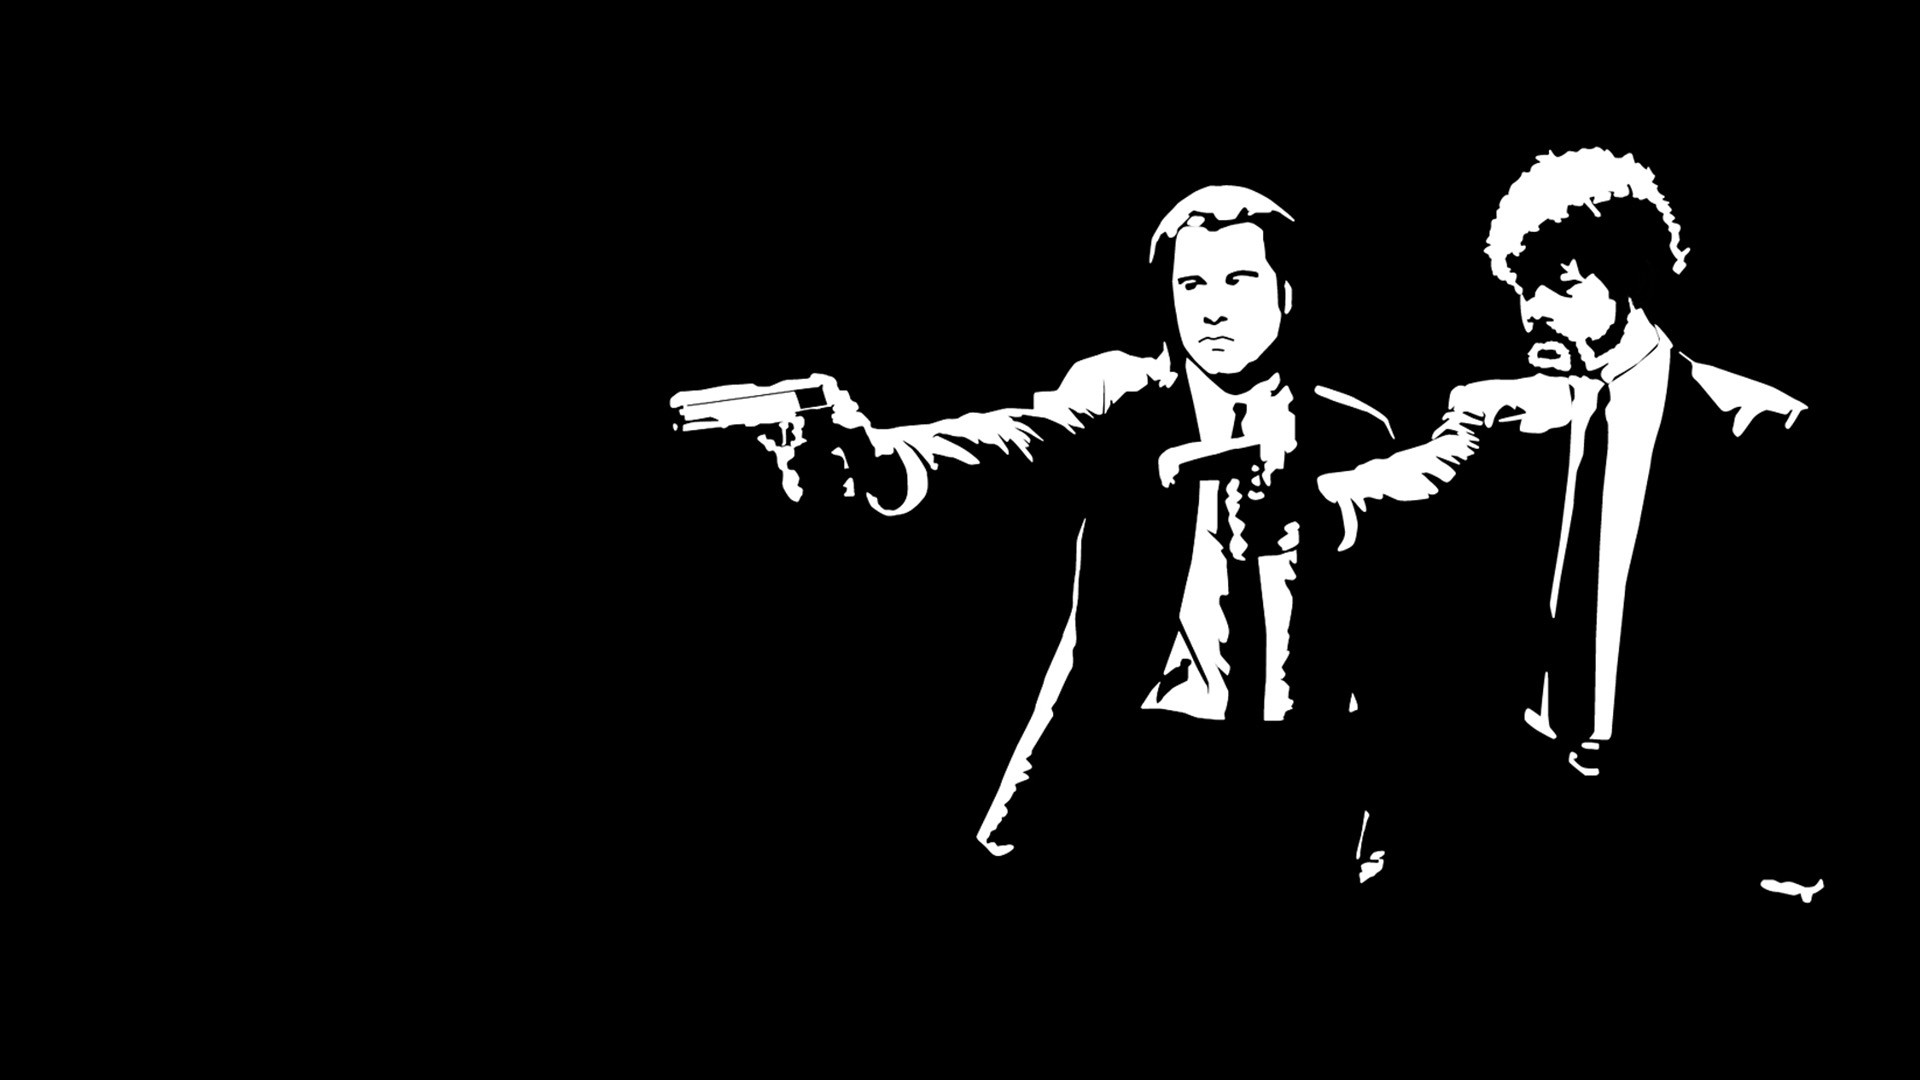 pulp fiction, killers, black